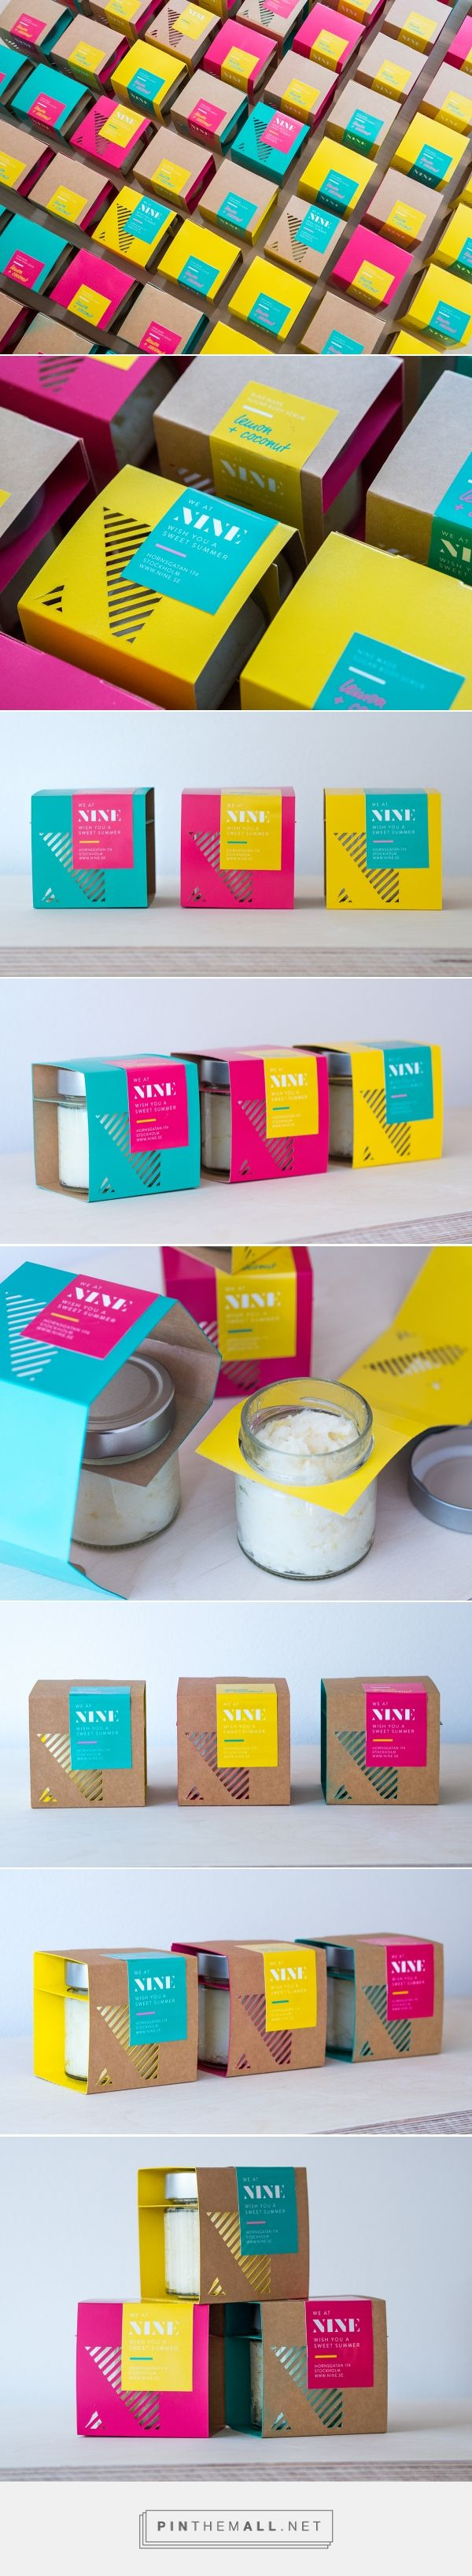 Nine Made Sugar Scrub Packaging by Linn Karlsson More